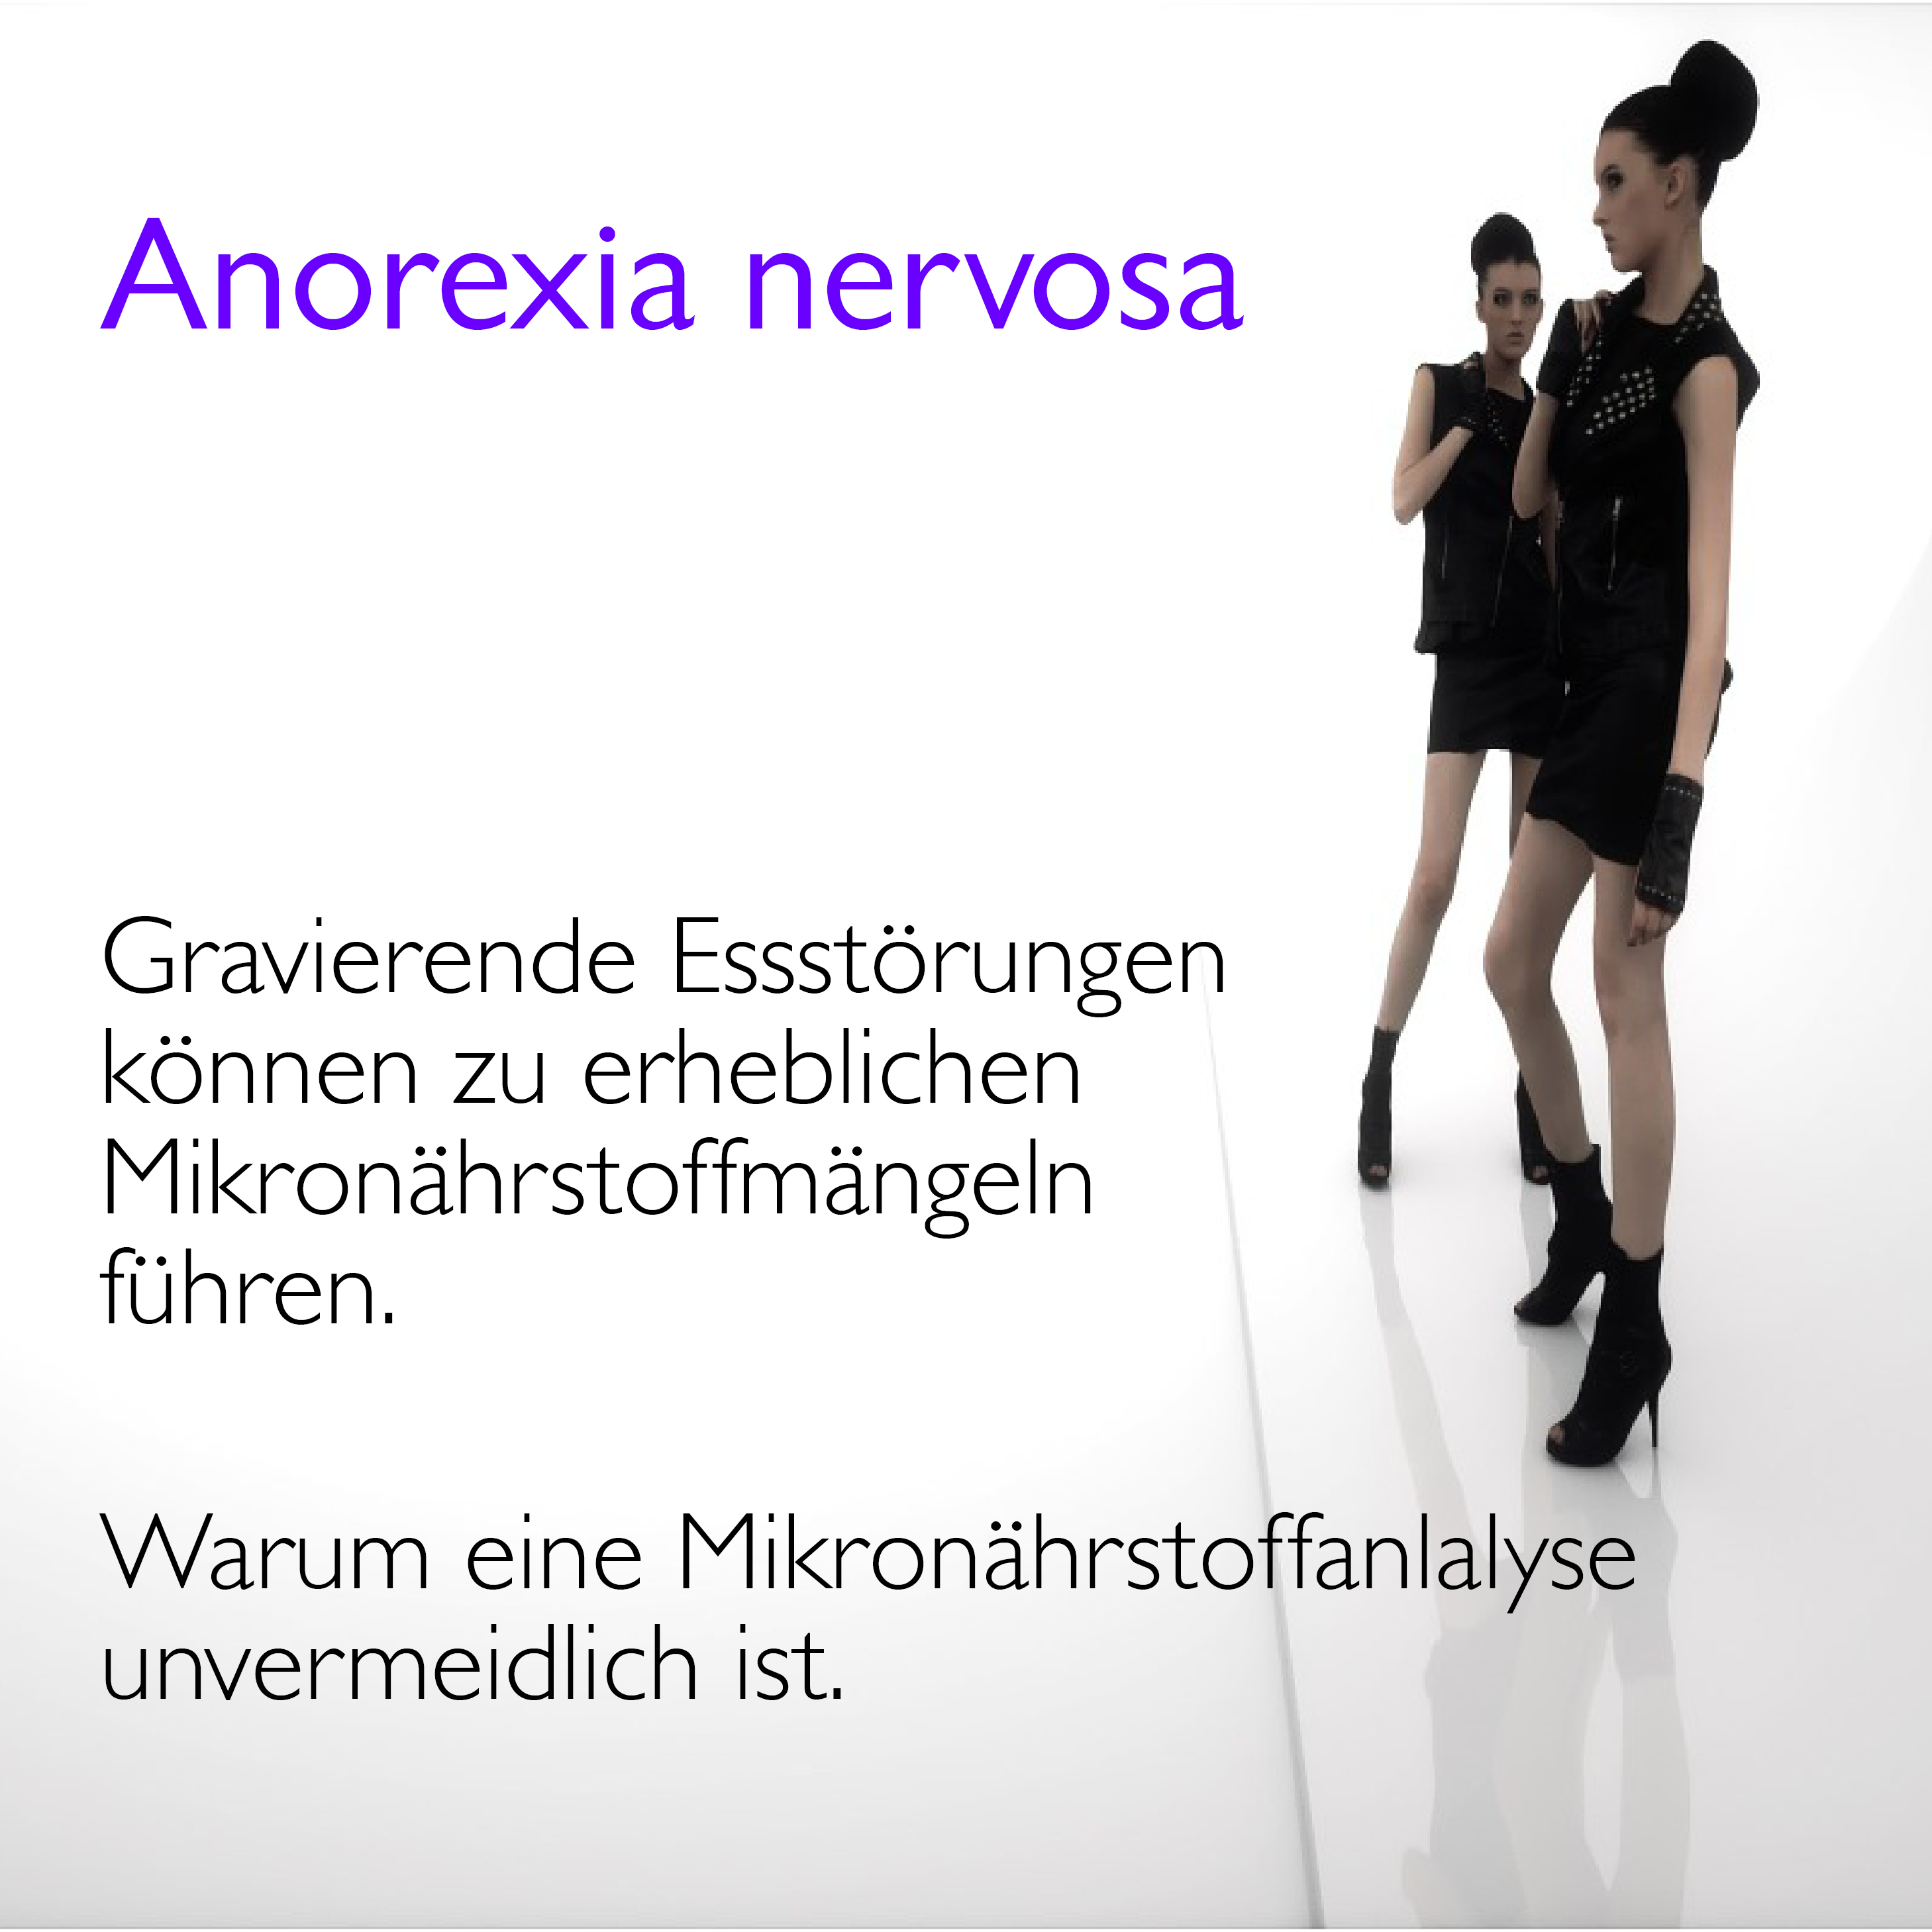 Anzeige Anorexia1